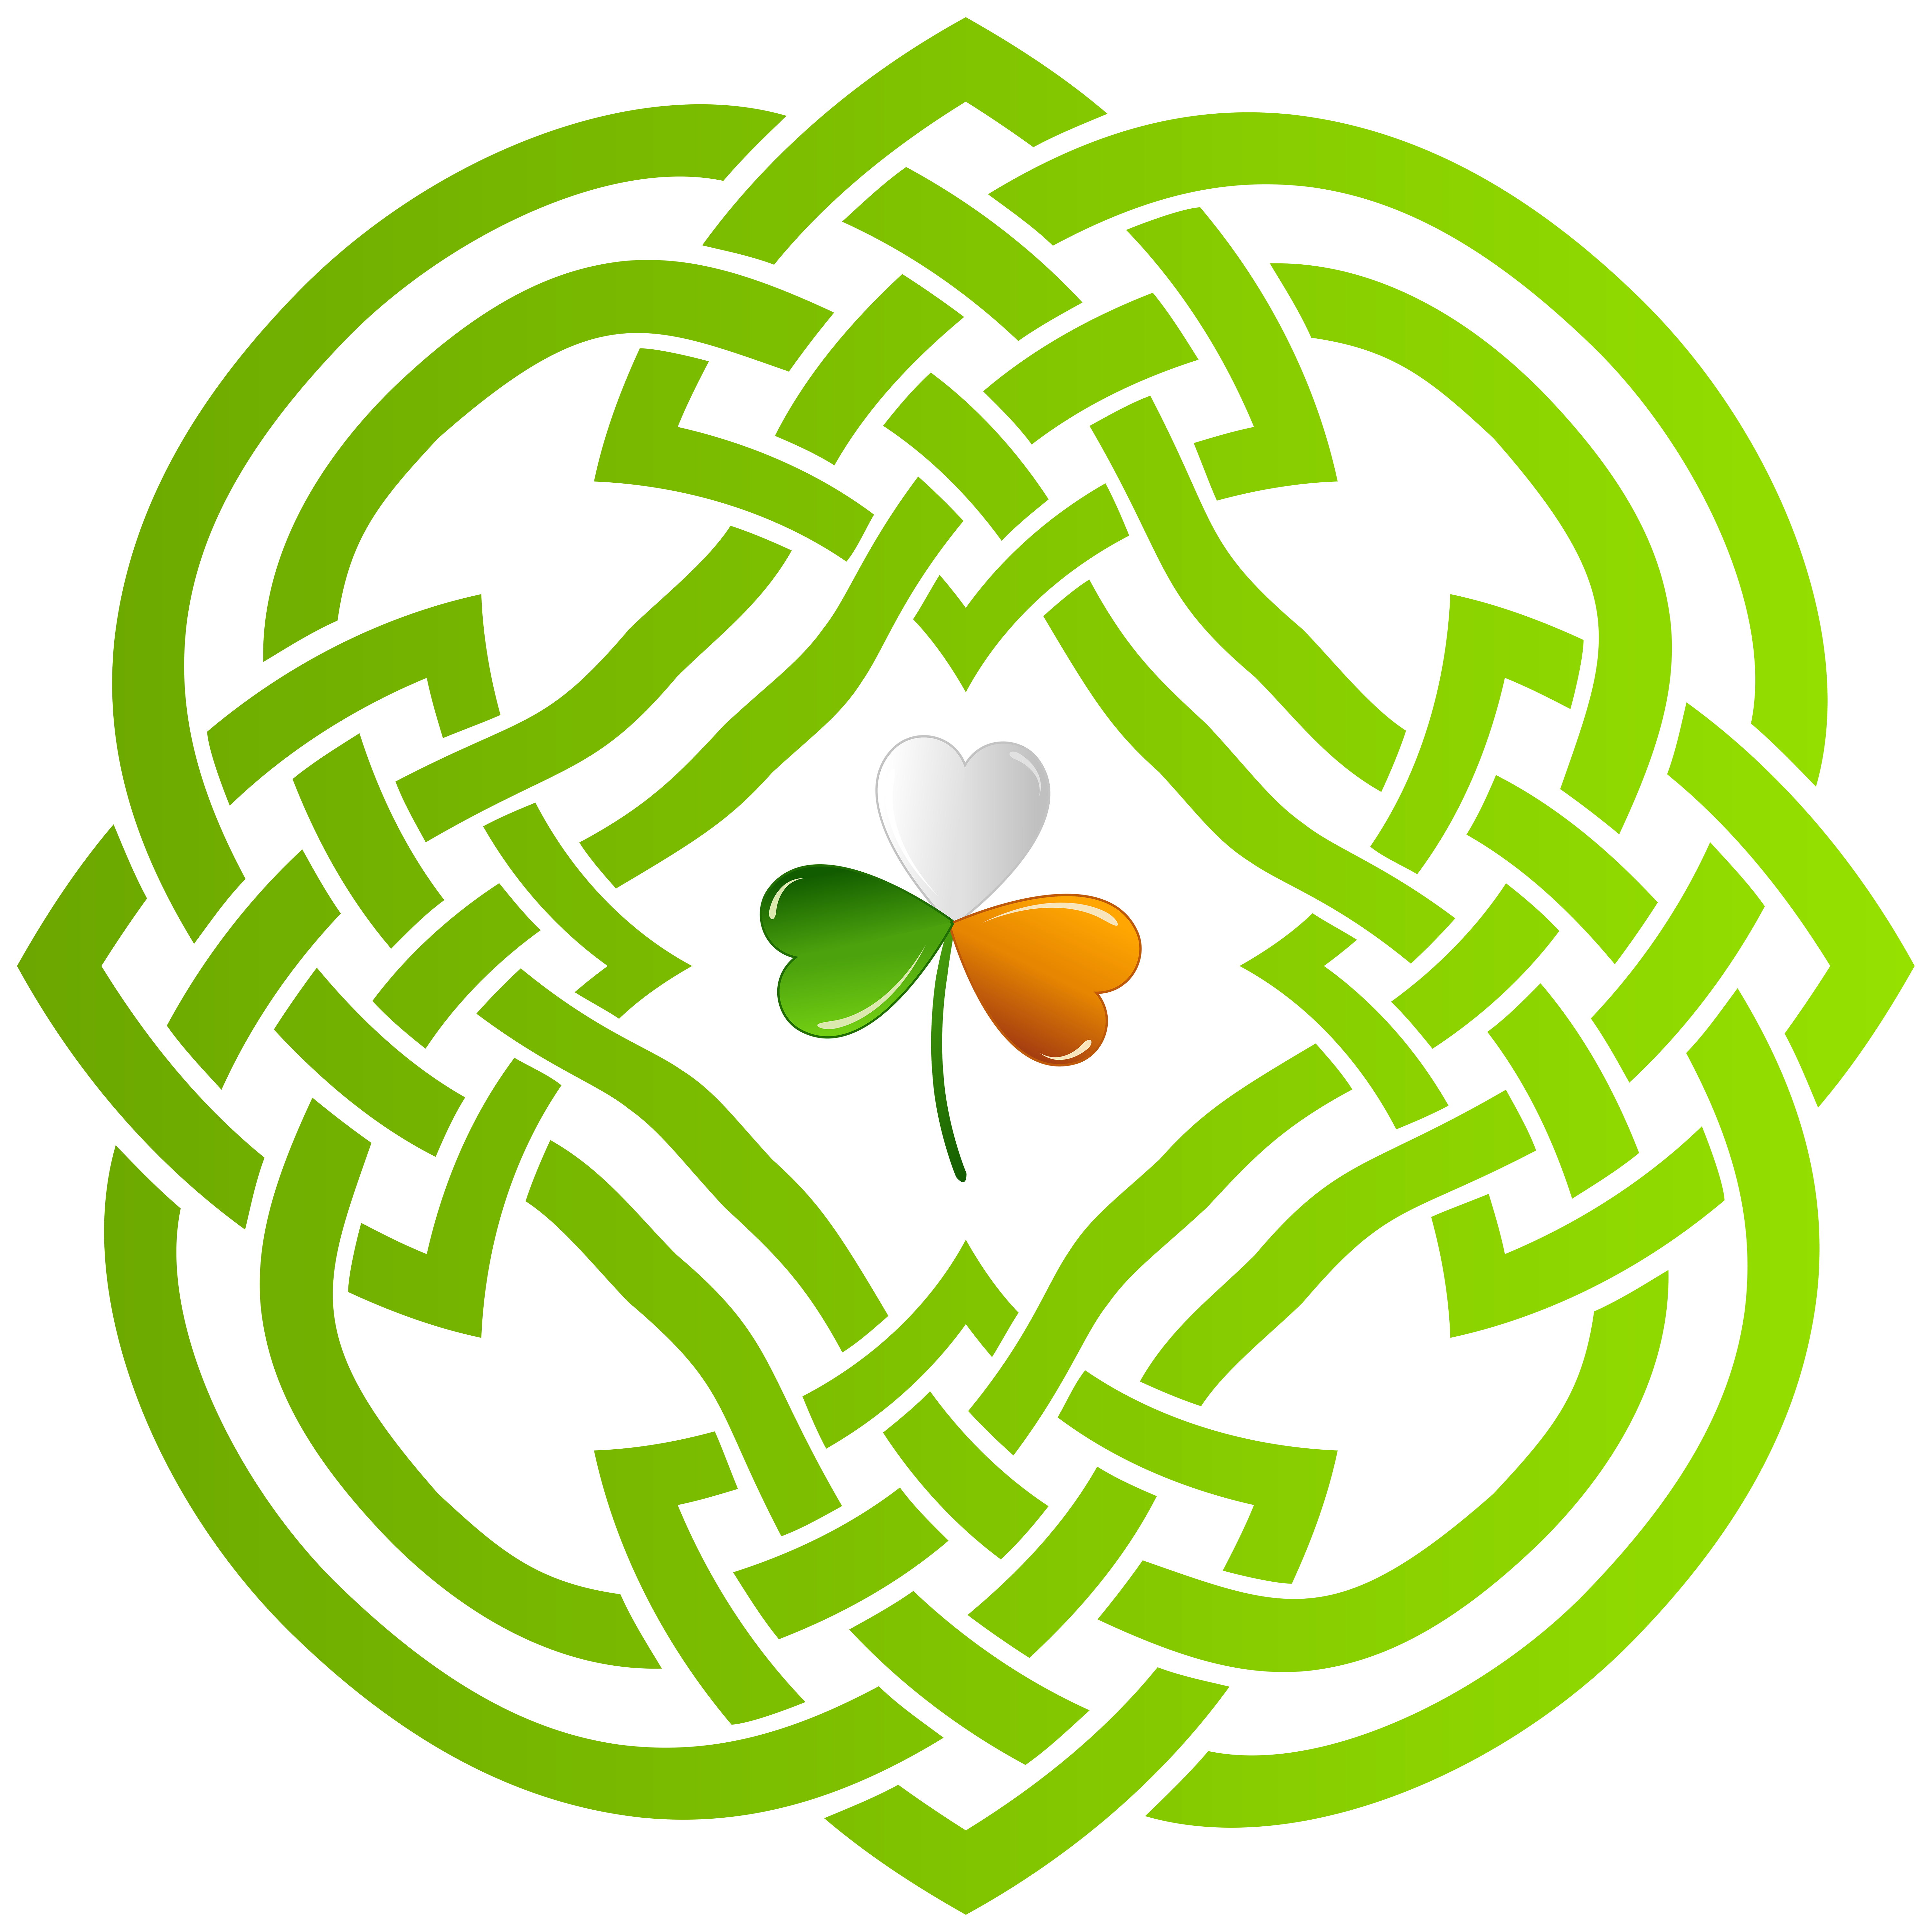 Celtic heart clipart banner royalty free stock 28+ Collection of Celtic Heart Clipart   High quality, free cliparts ... banner royalty free stock